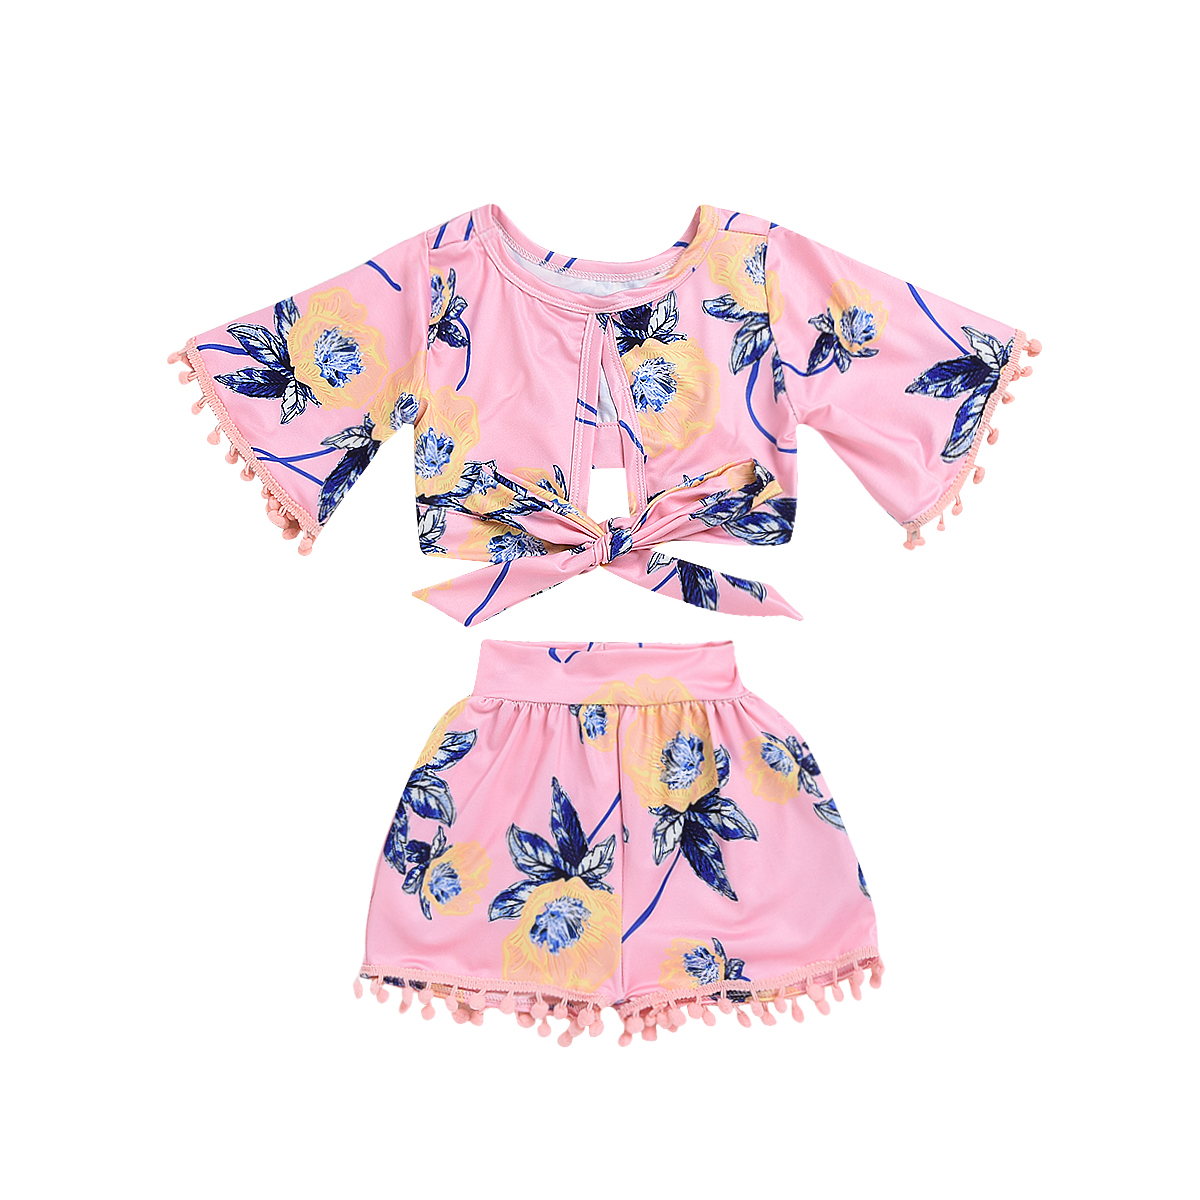 Pudcoco Toddler Girl Summer Clothing Set T-shirt Tops+Short Pants Outfits Kids Baby Girl Flower Tassel Clothes 2pcs new casual baby girl clothes baby girl clothing set short sleeve t shirt pants 2pcs suits